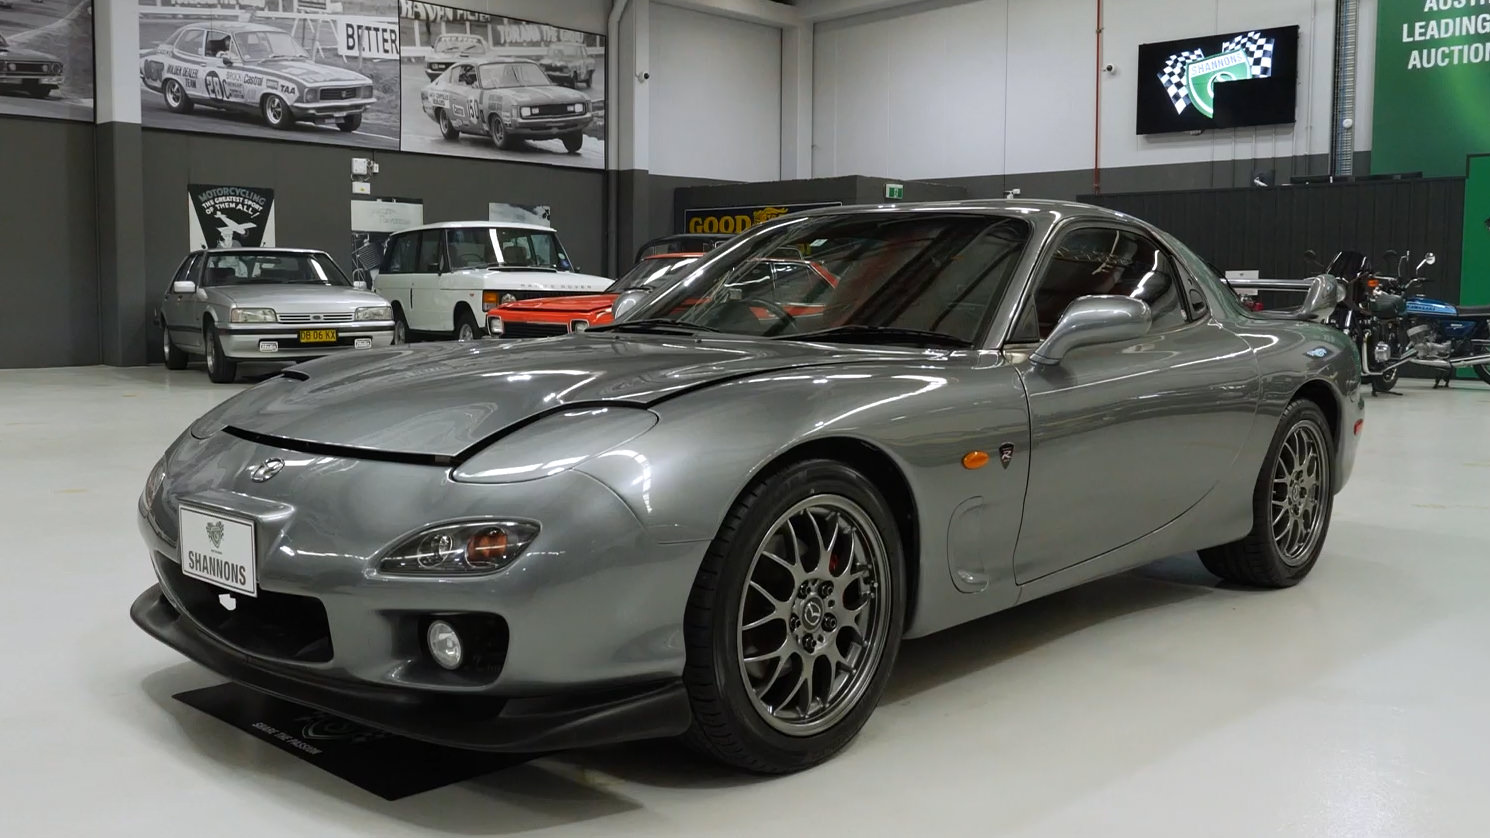 2002 Mazda RX-7 Spirit R 'Type A' Coupe - 2021 Shannons Spring Timed Online Auction